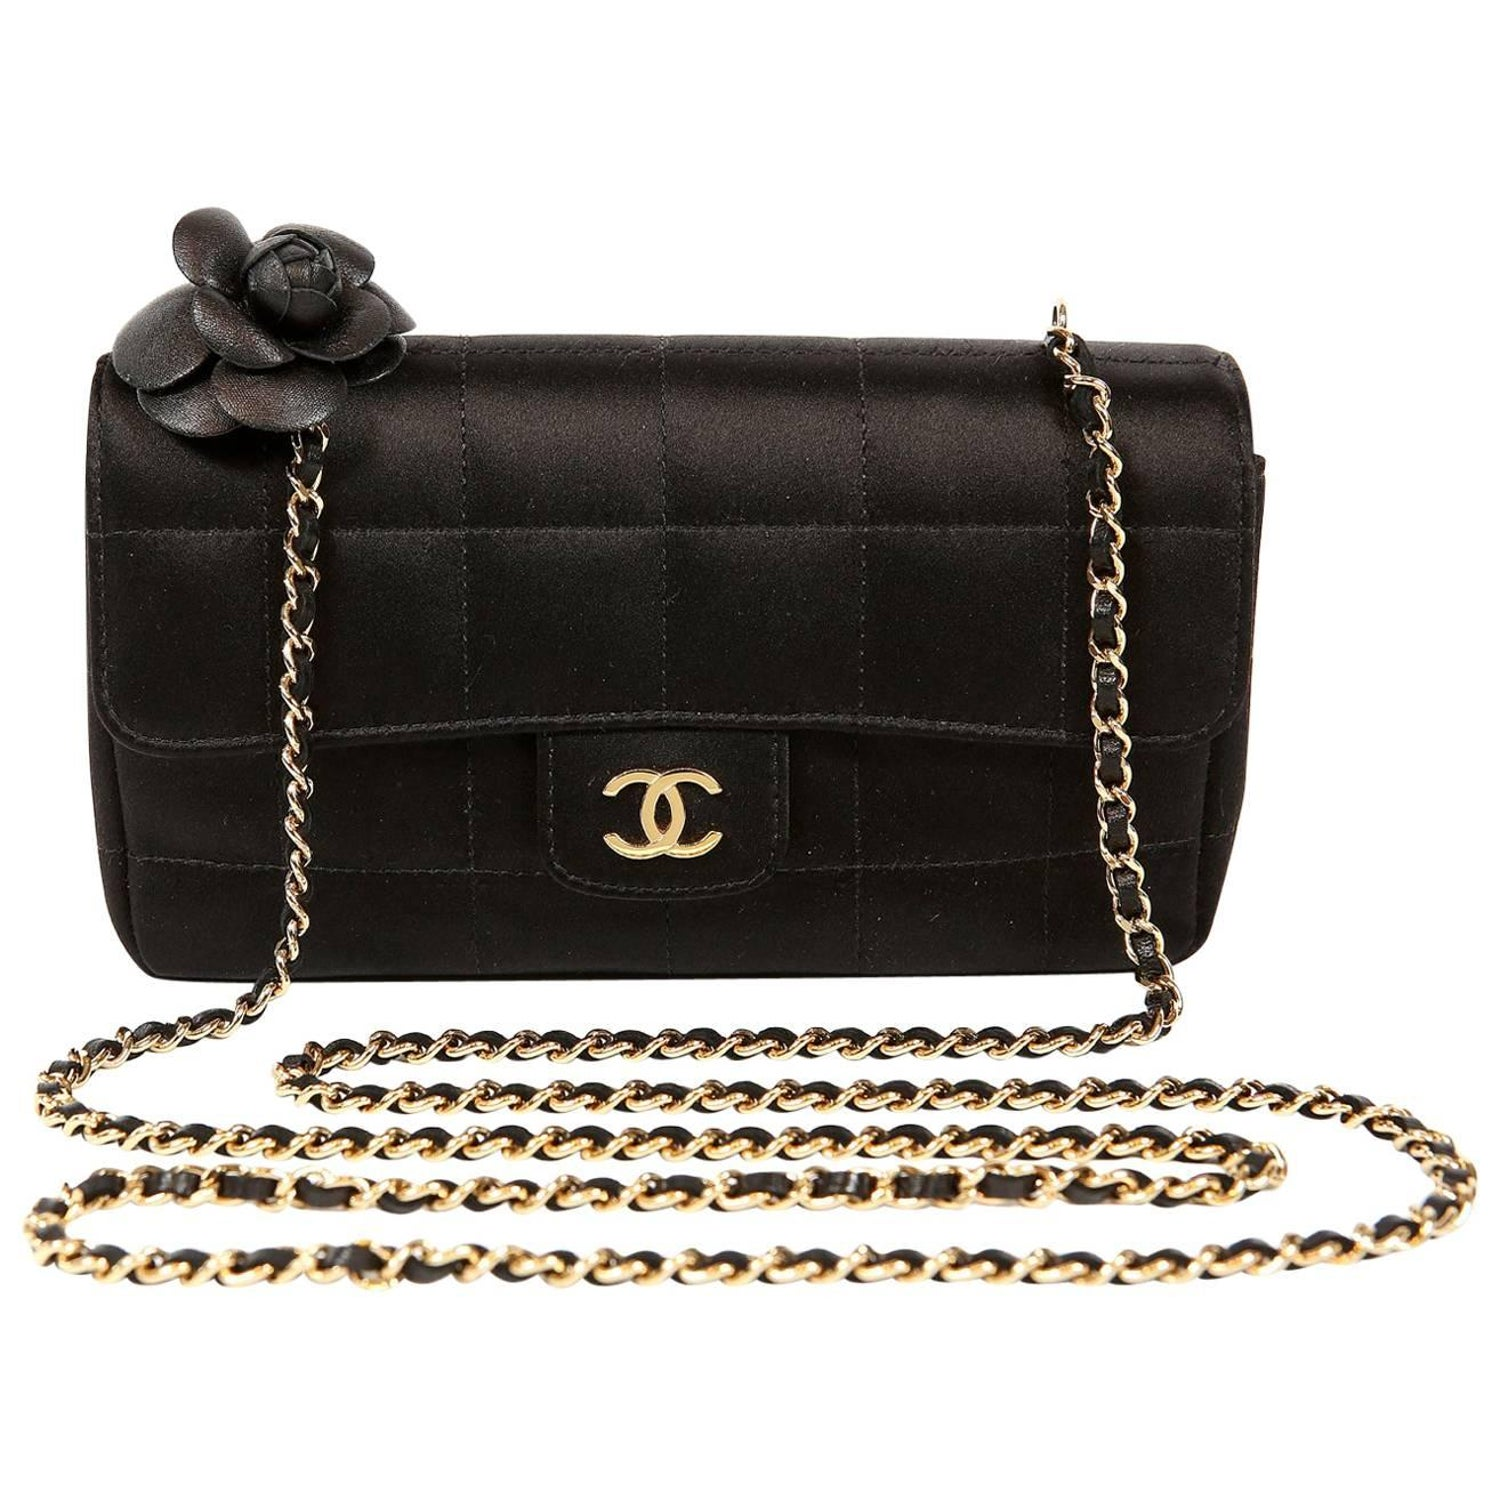 c087f0173742 Chanel Black Satin Camellia Cross Body Bag For Sale at 1stdibs